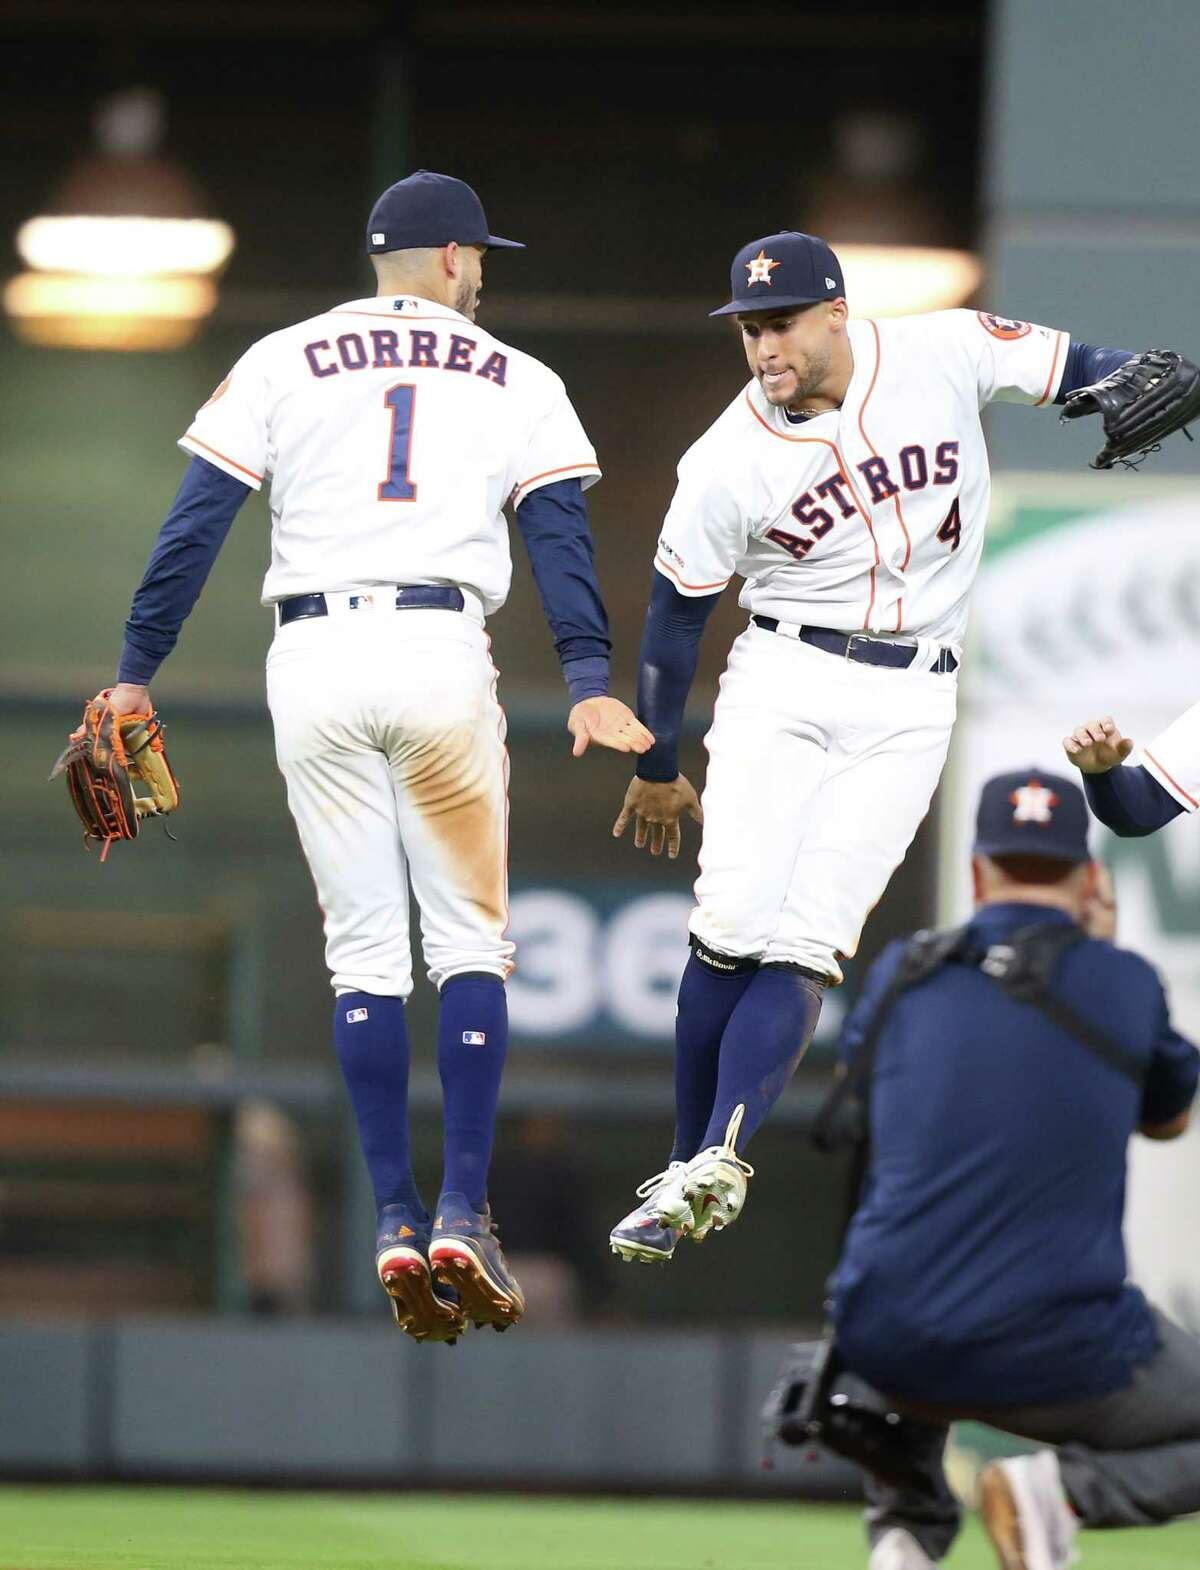 Houston Astros shortstop Carlos Correa (1) and Houston Astros center fielder George Springer (4) celebrate the team's 4-3 win over the New York Yankees on Monday, April 8, 2019 in Houston. Astros won the game 4-3 and lead the series 1-0.